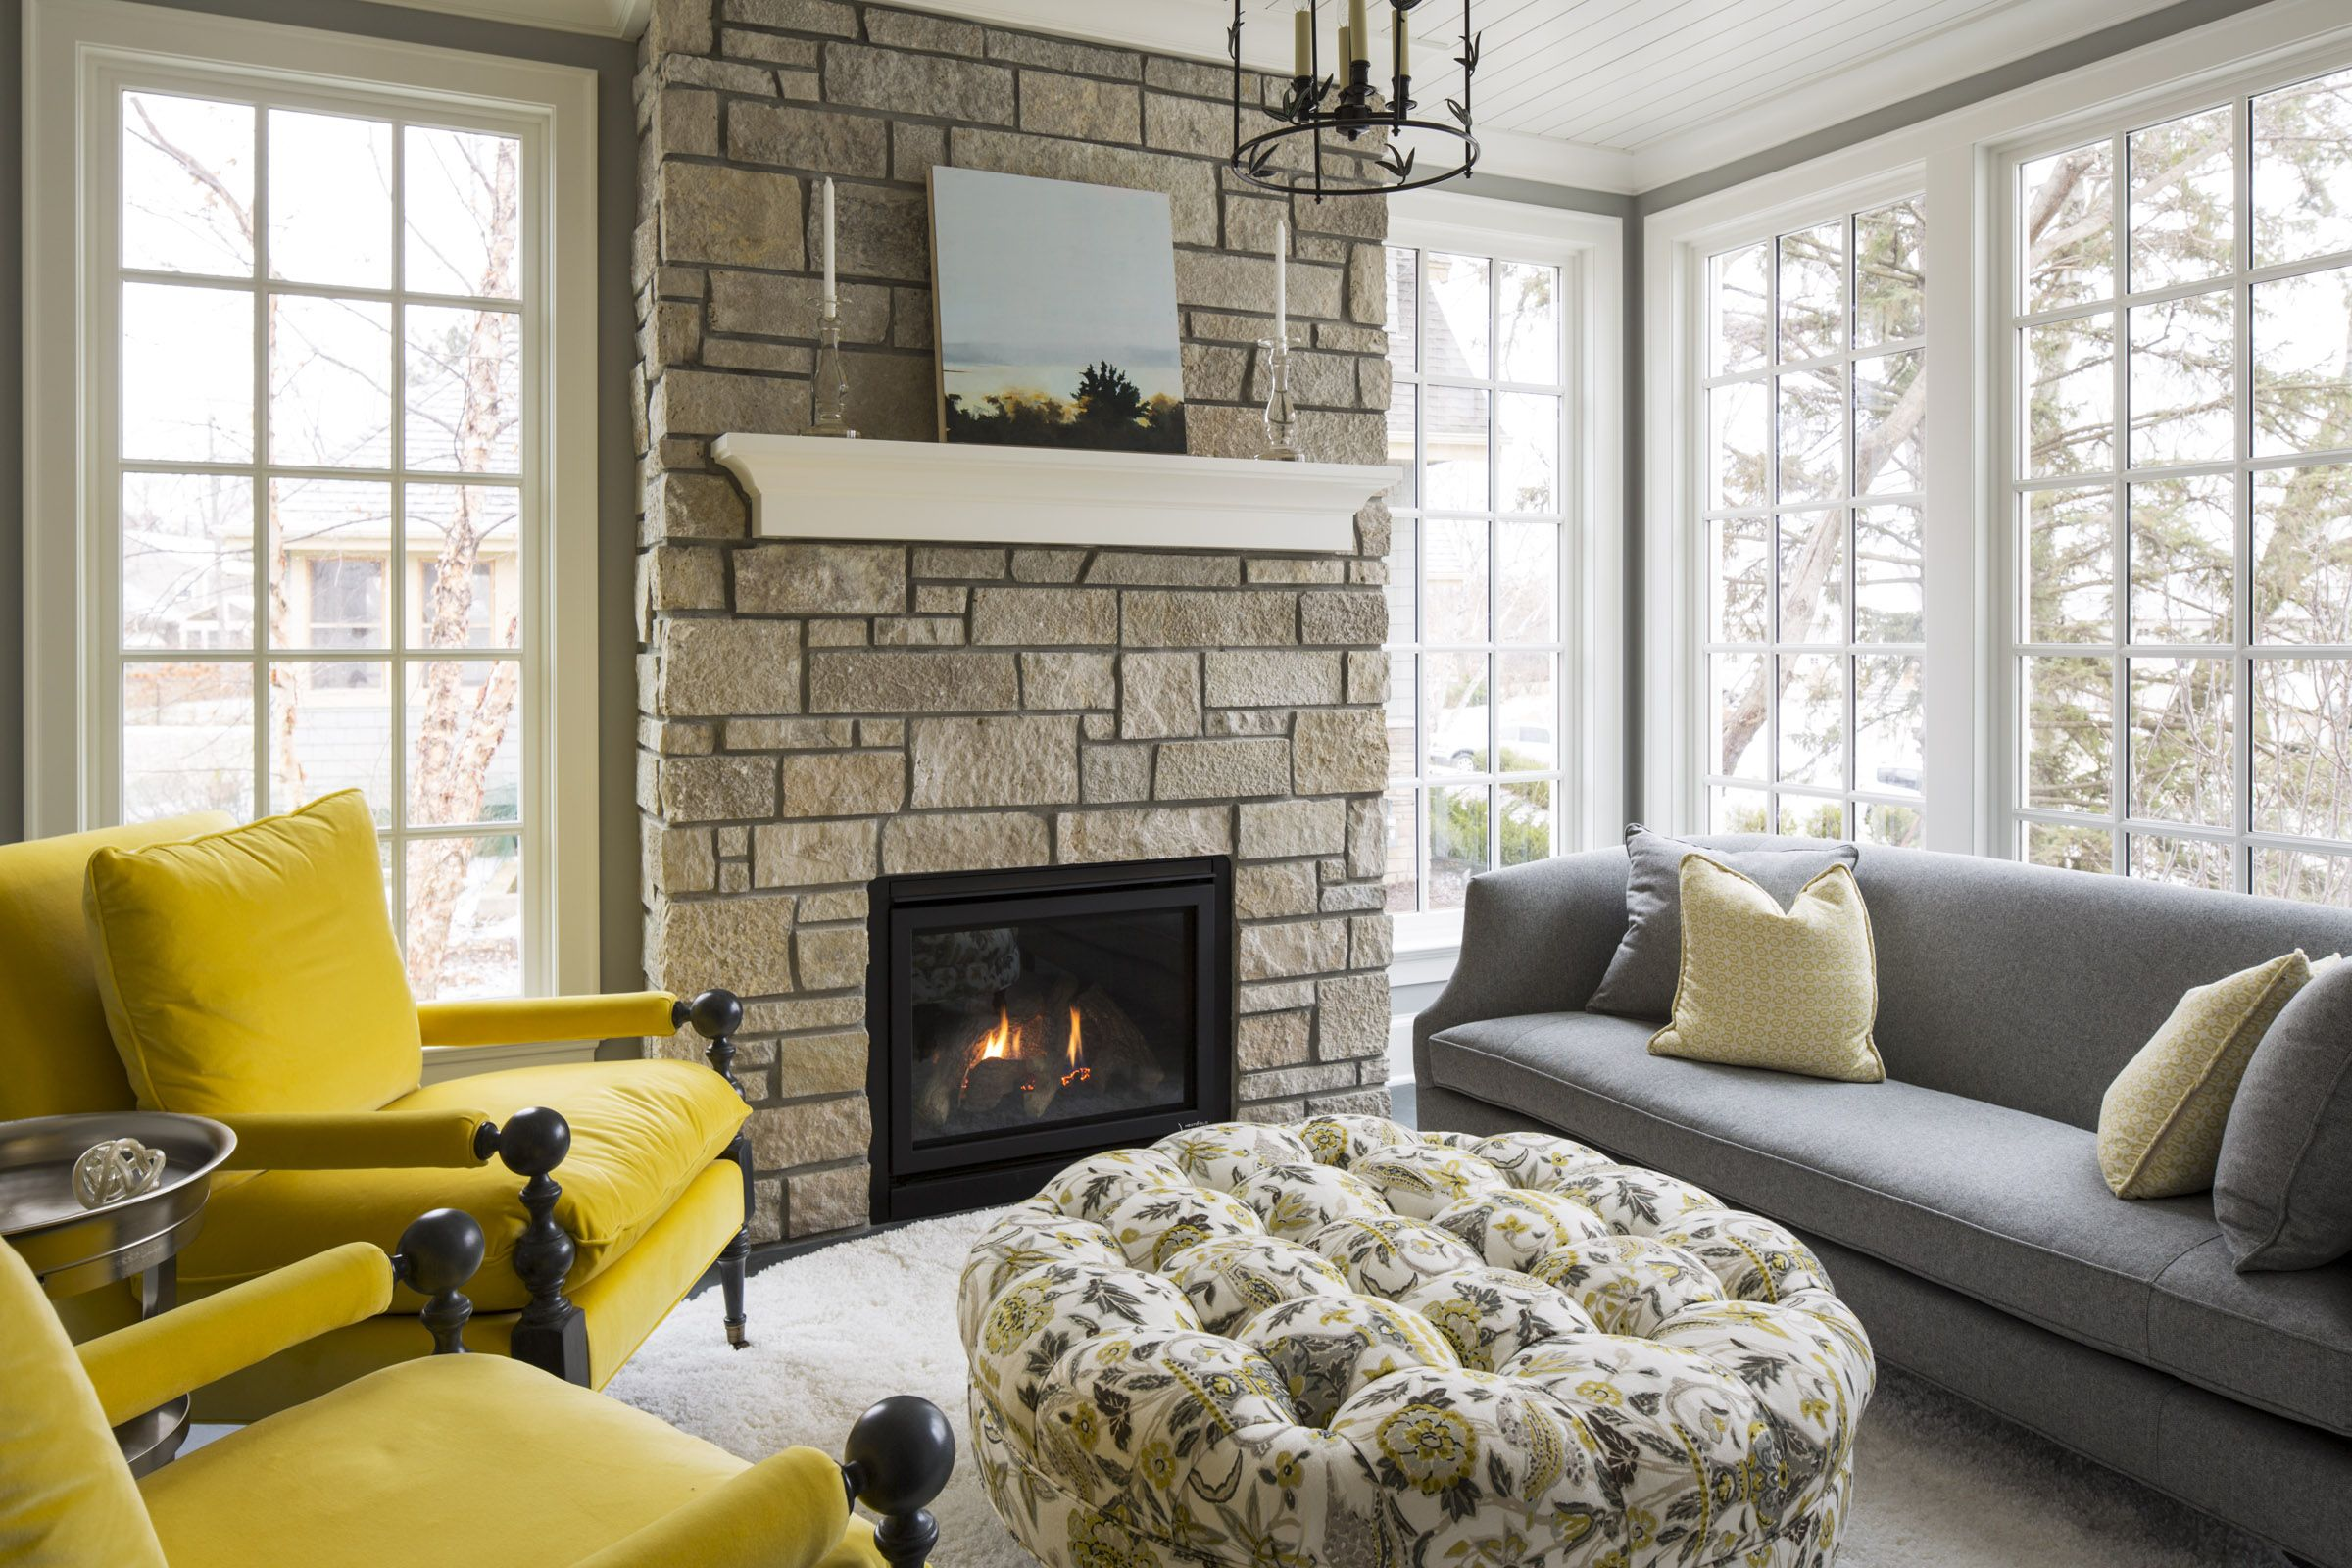 Study / library //www.pinterest.com/cityhomes/ //instagram ... on royal design homes, cyclone design homes, stone design homes, yellow design homes, glass design homes, natural design homes, oak design homes, brick design homes,